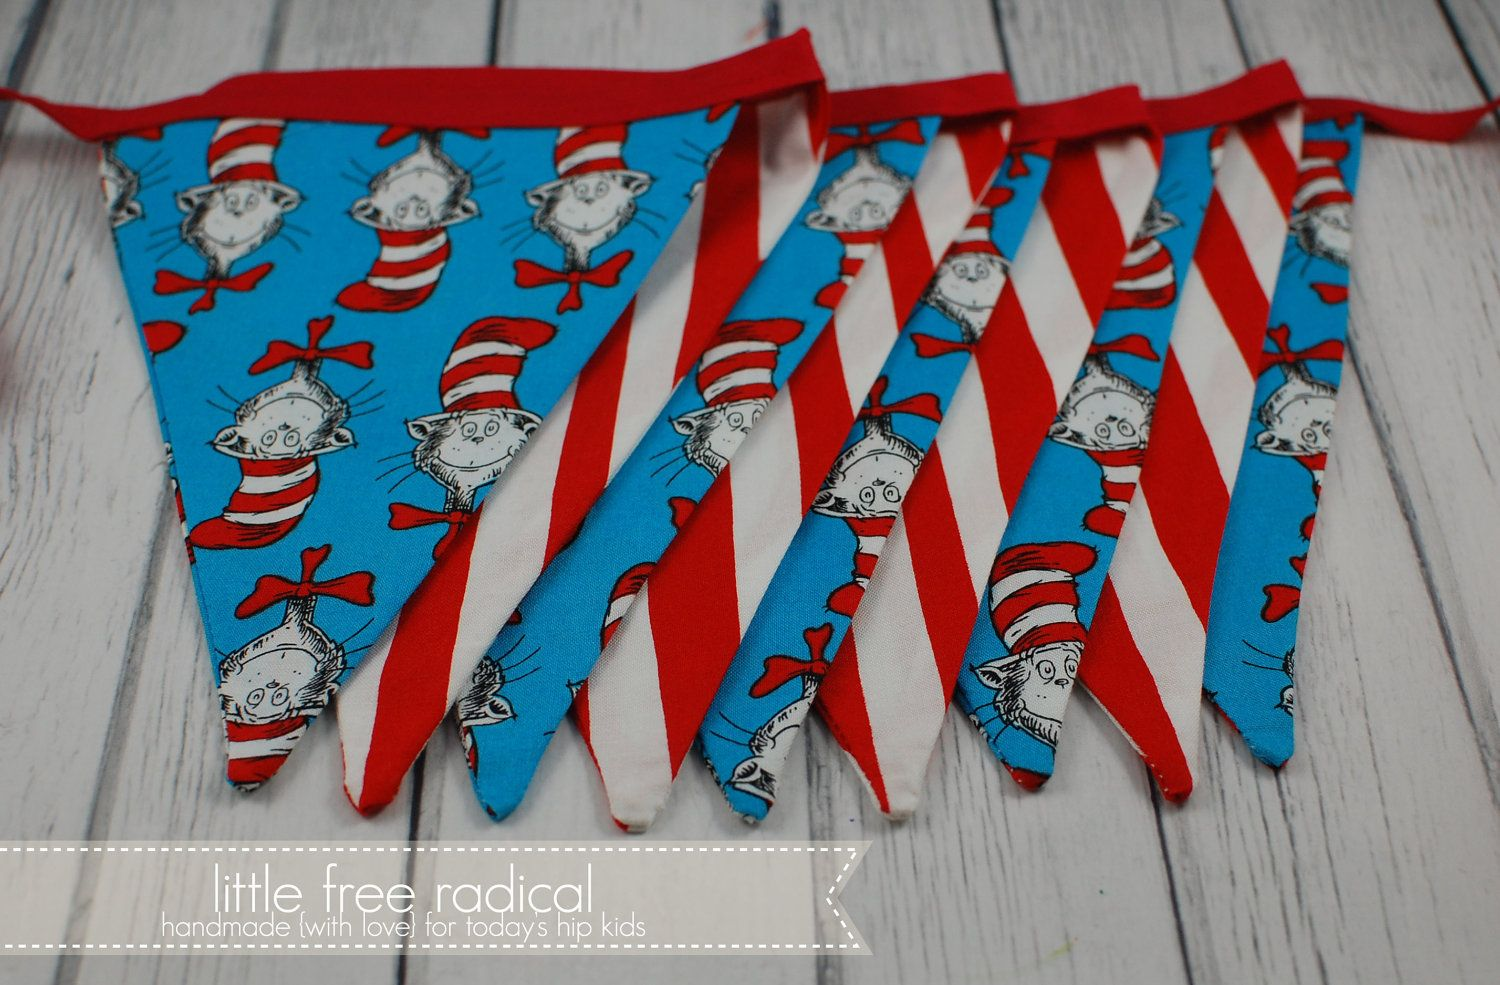 Dr. Seuss- Cat in the Hat - Fabric Pennant Bunting Banner